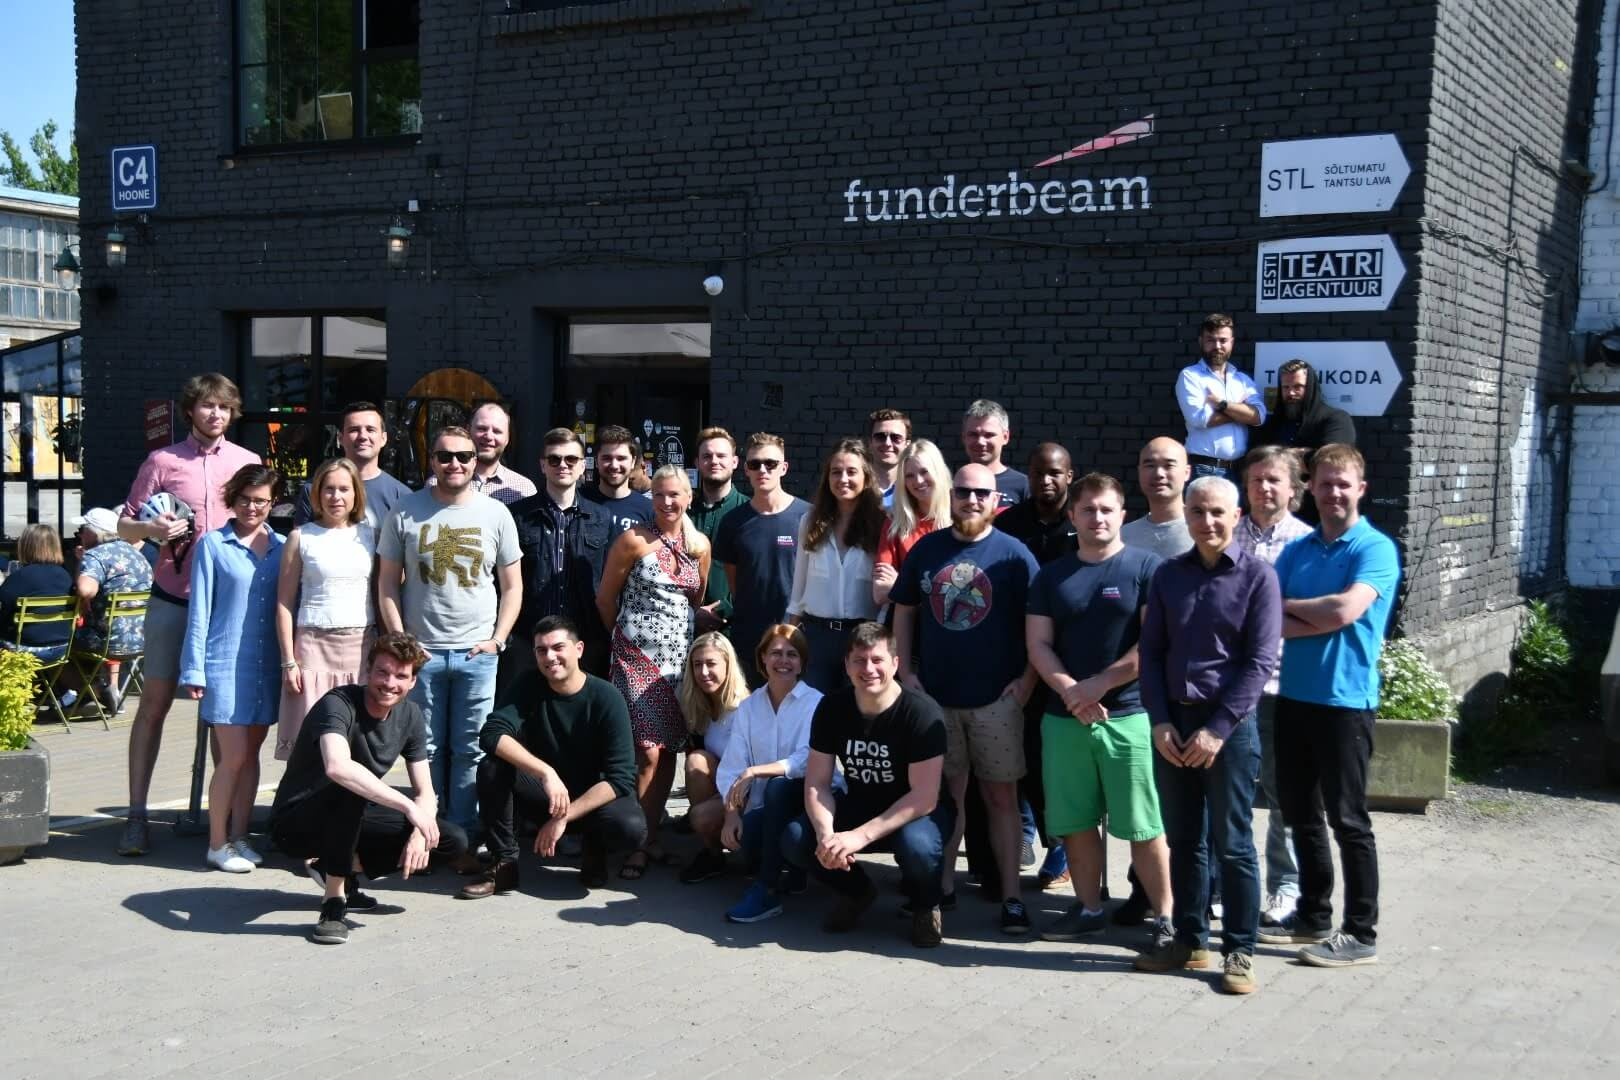 Estonian-founded equity trading platform Funderbeam launches new venture index